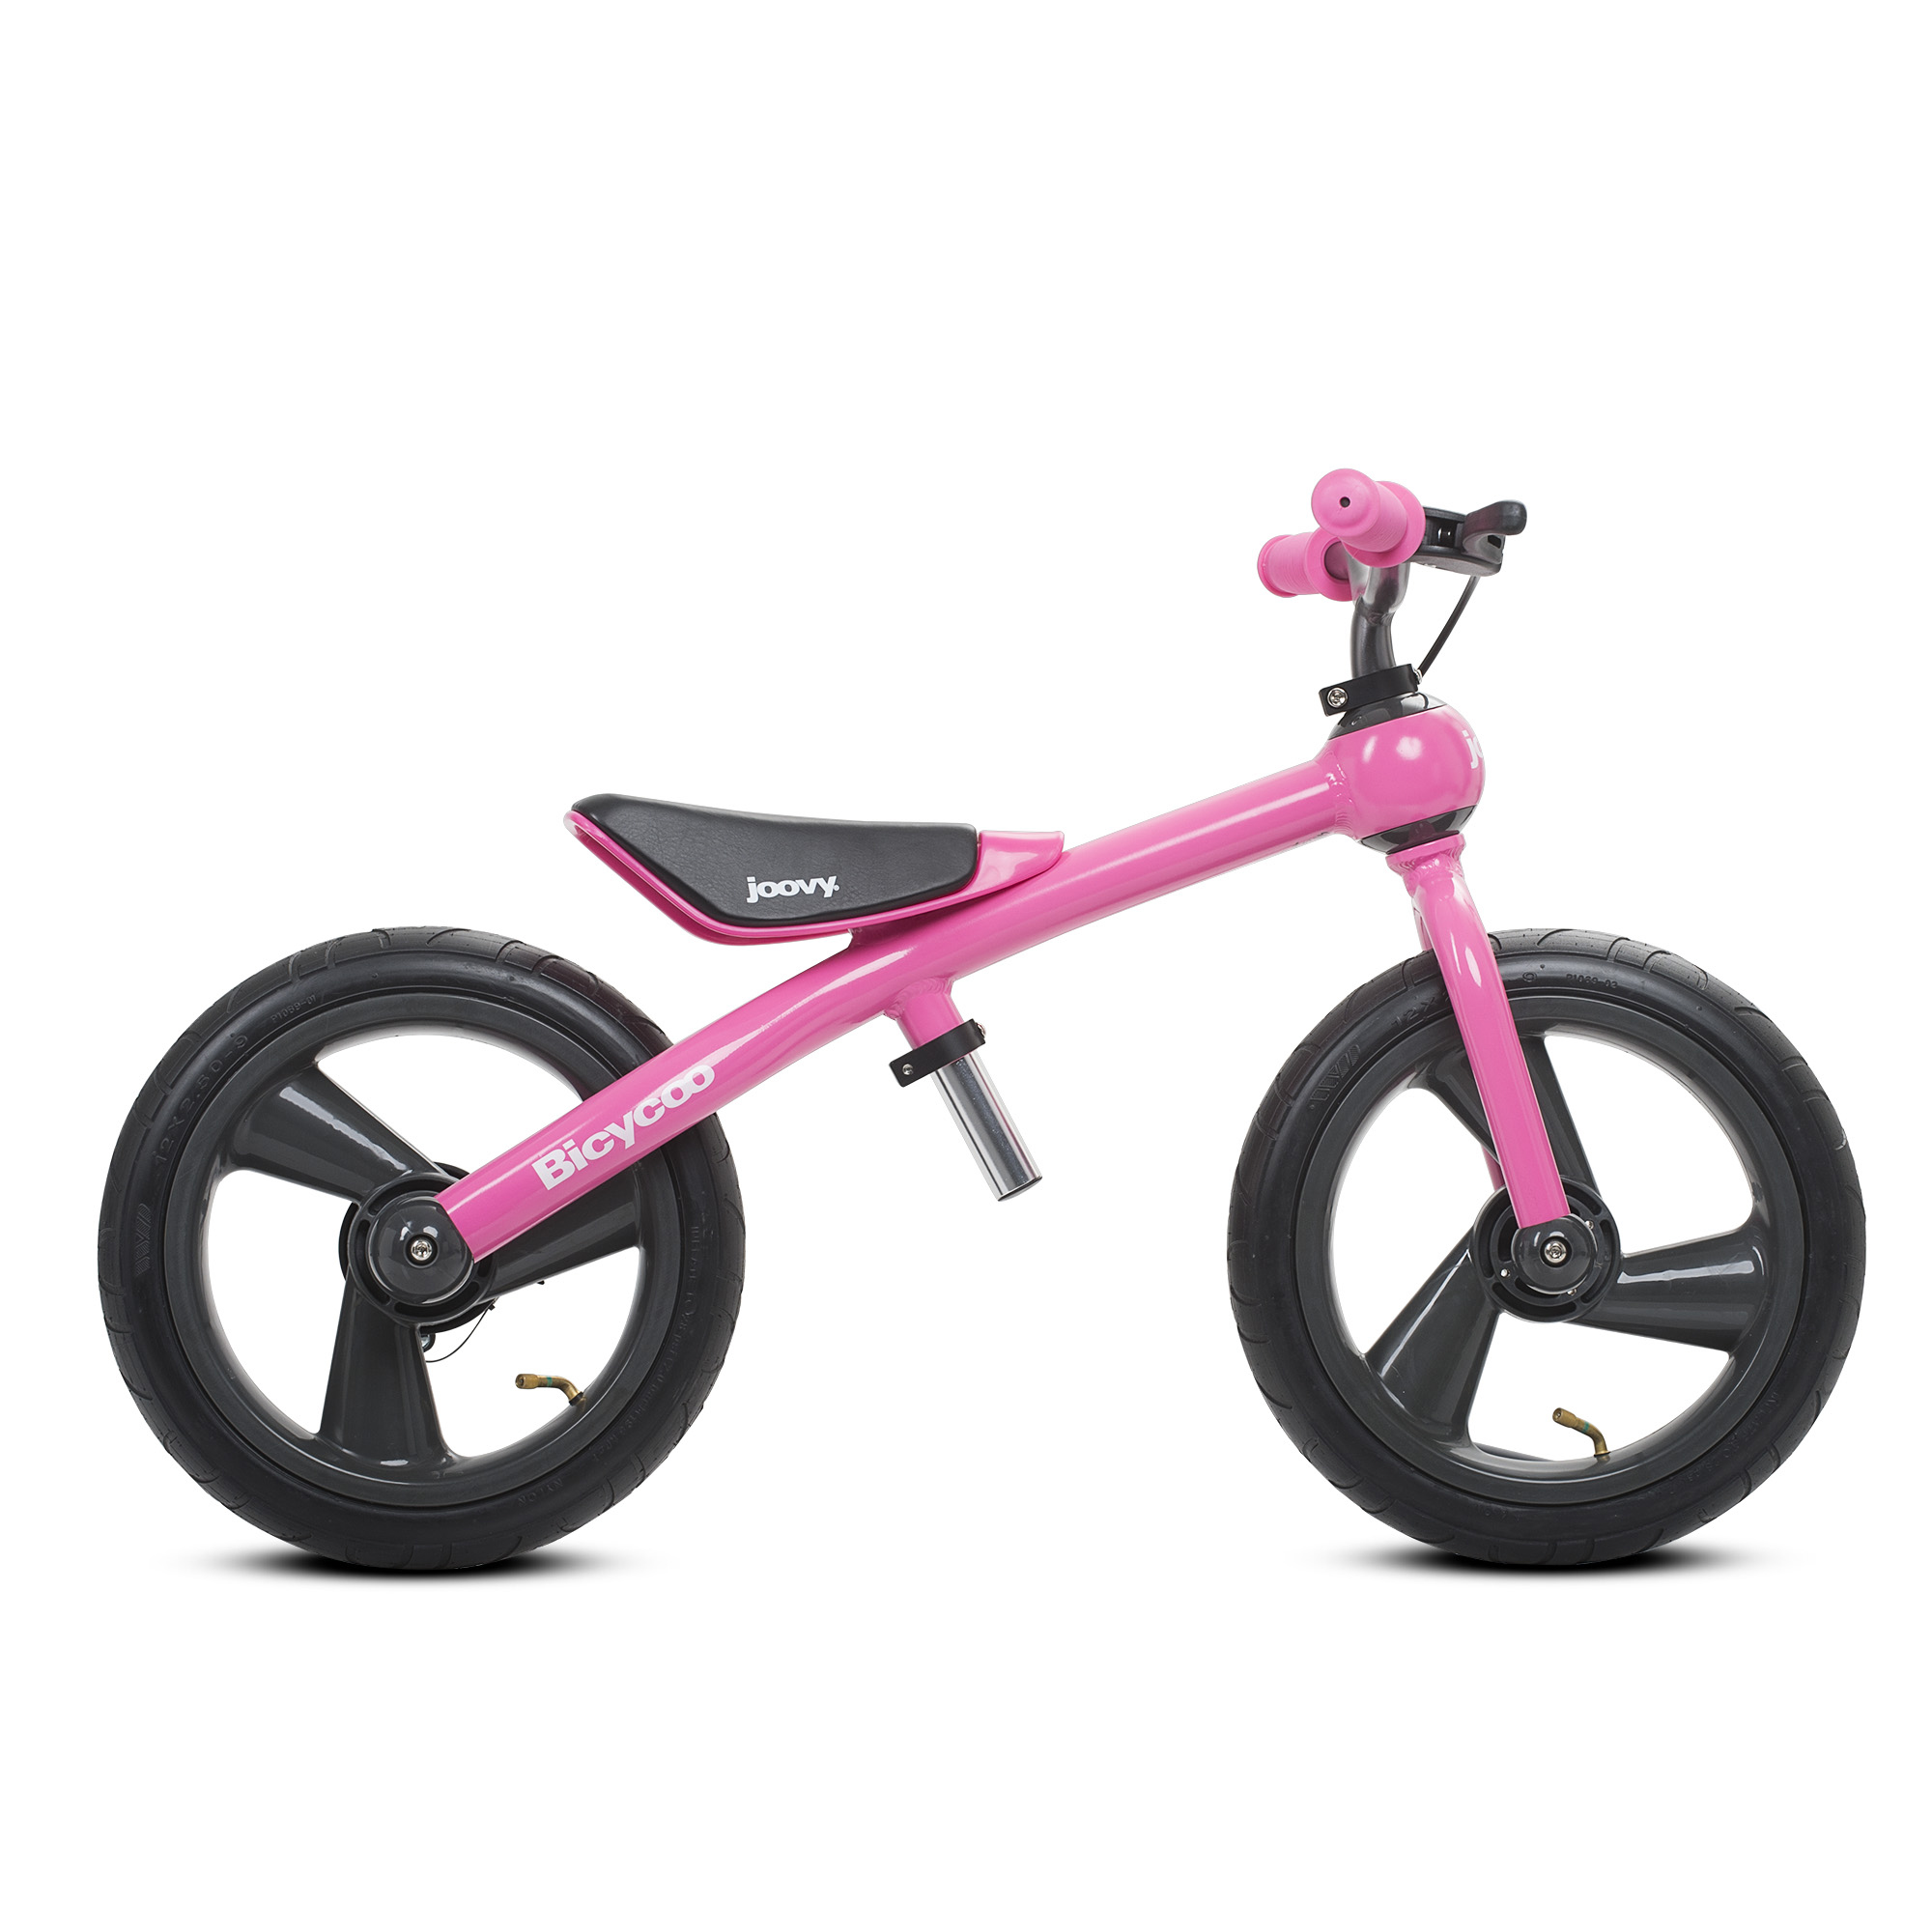 Toddler Balance Bike Joovy - Toddler Girl Holiday Christmas Gift Ideas Unique - The Overwhelmed Mommy Blogger